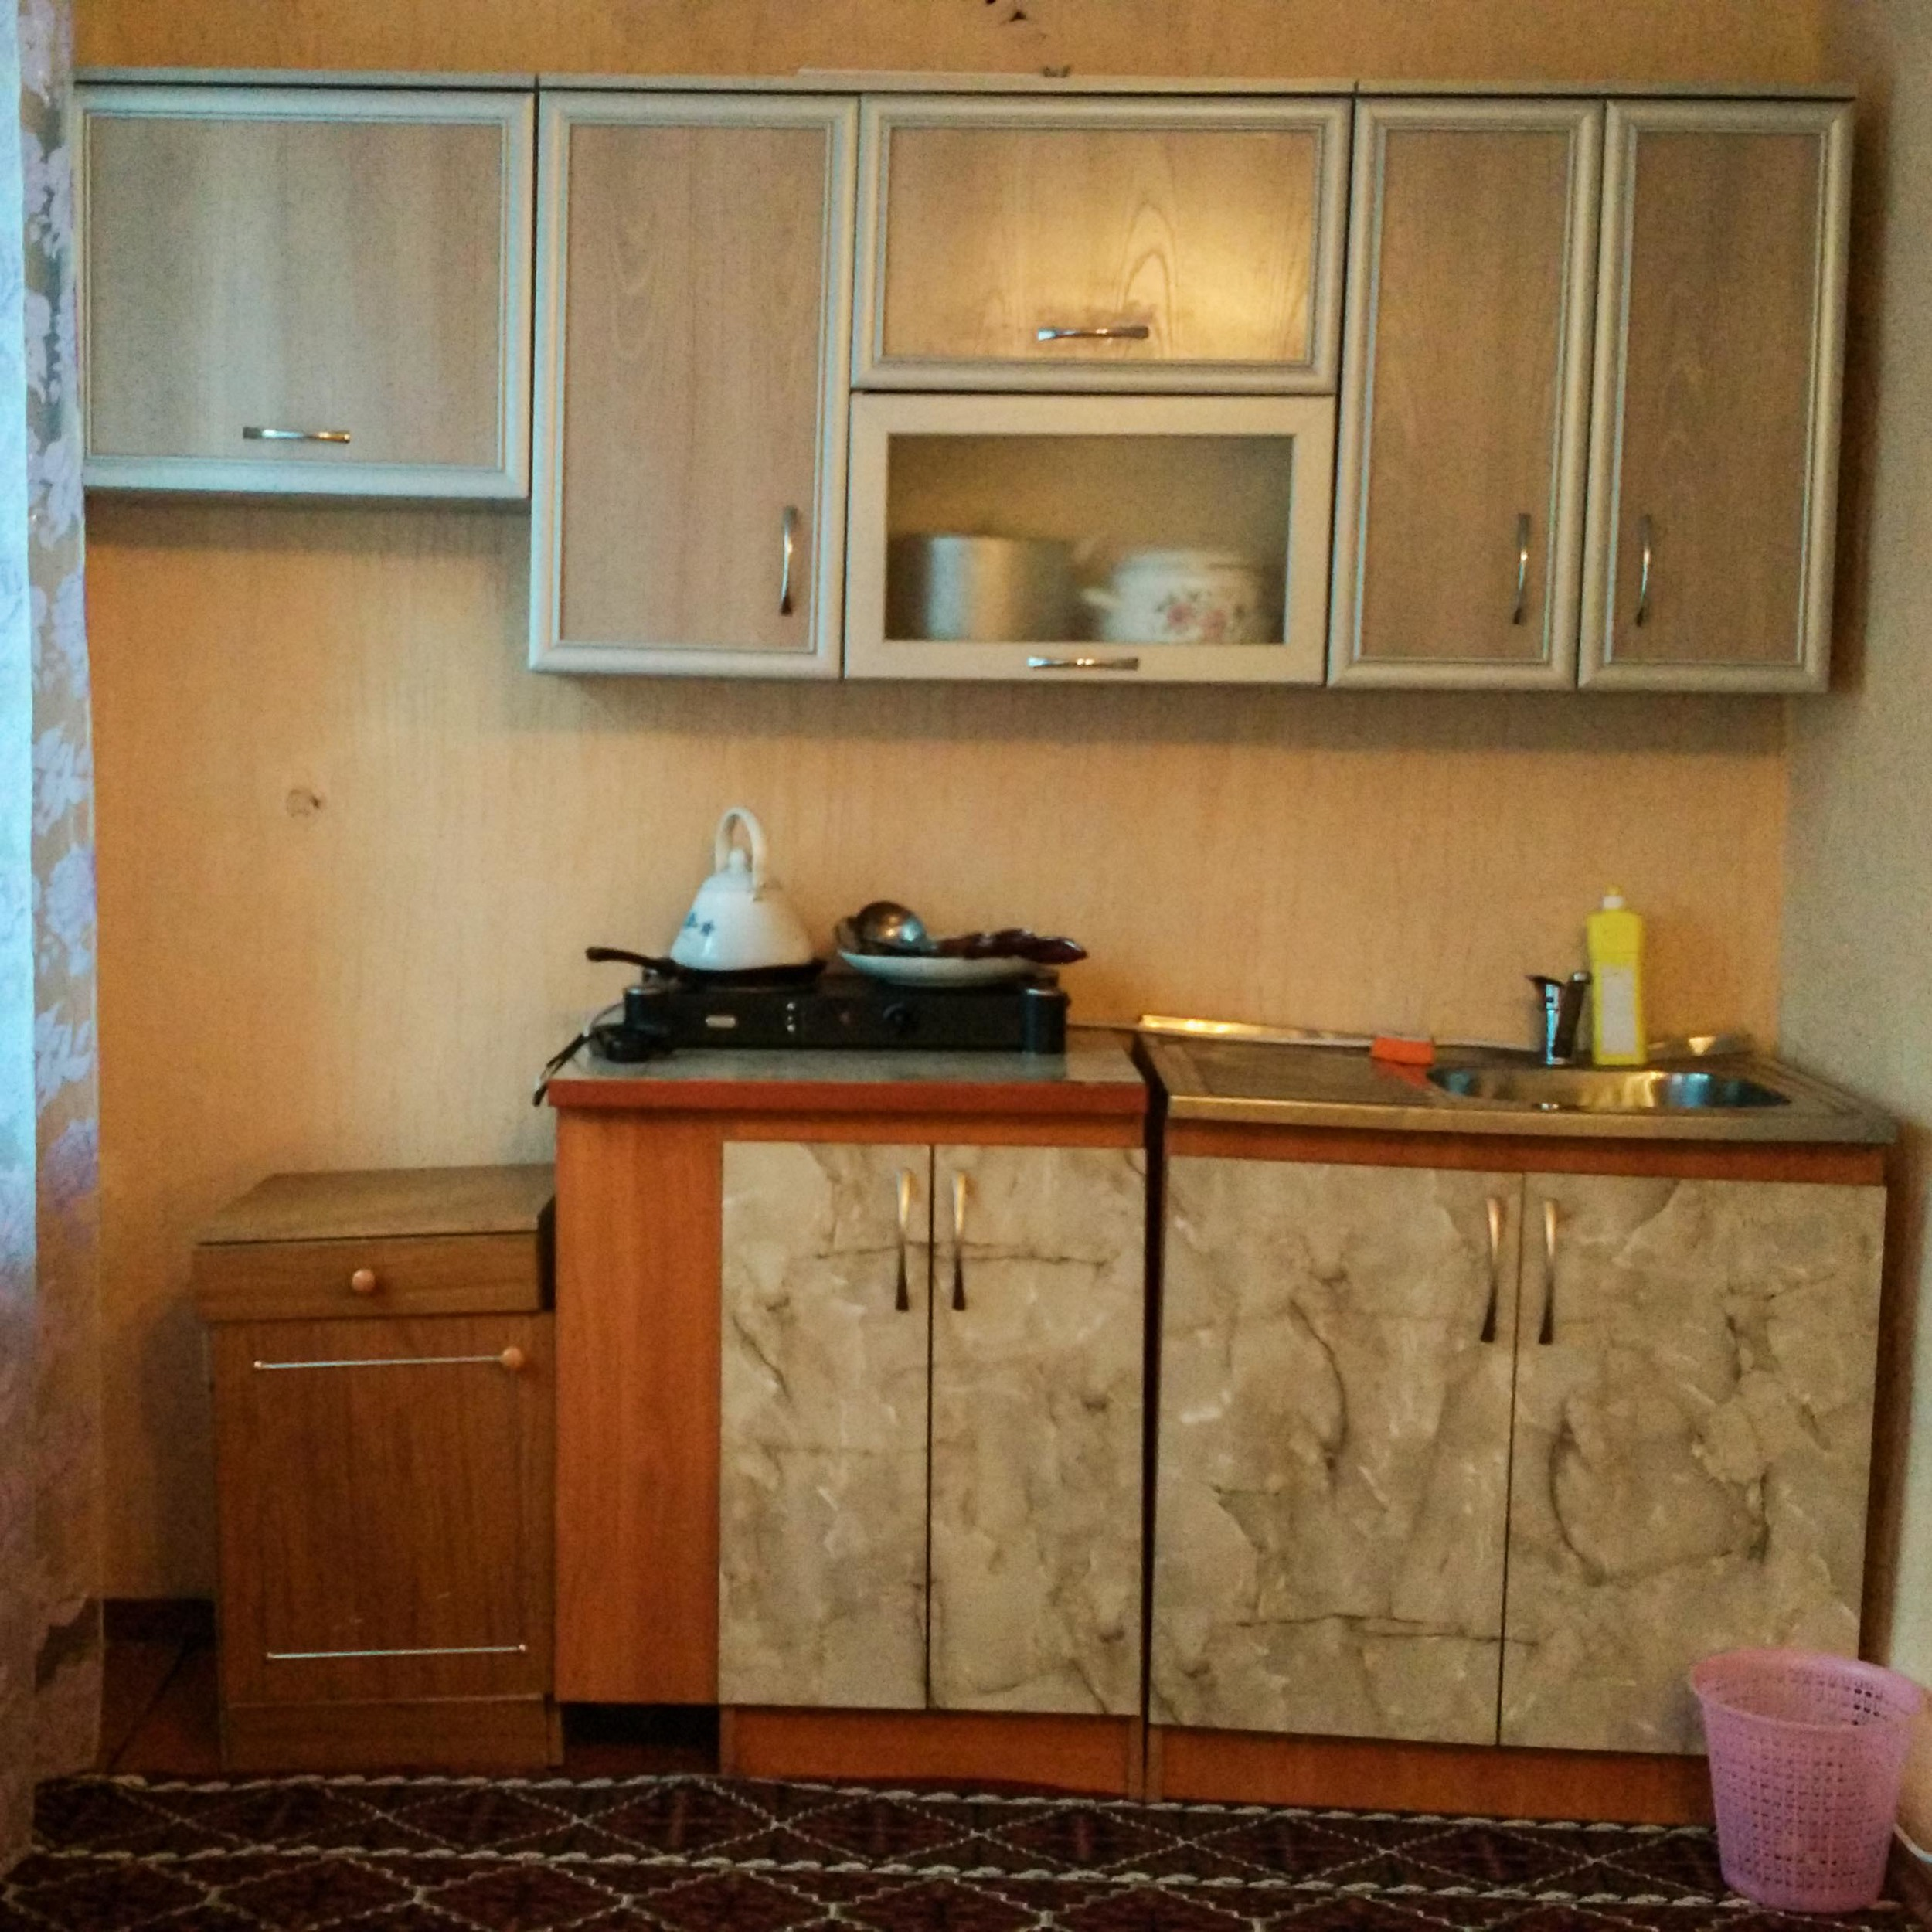 The droopy kitchen in our Naryn homestay